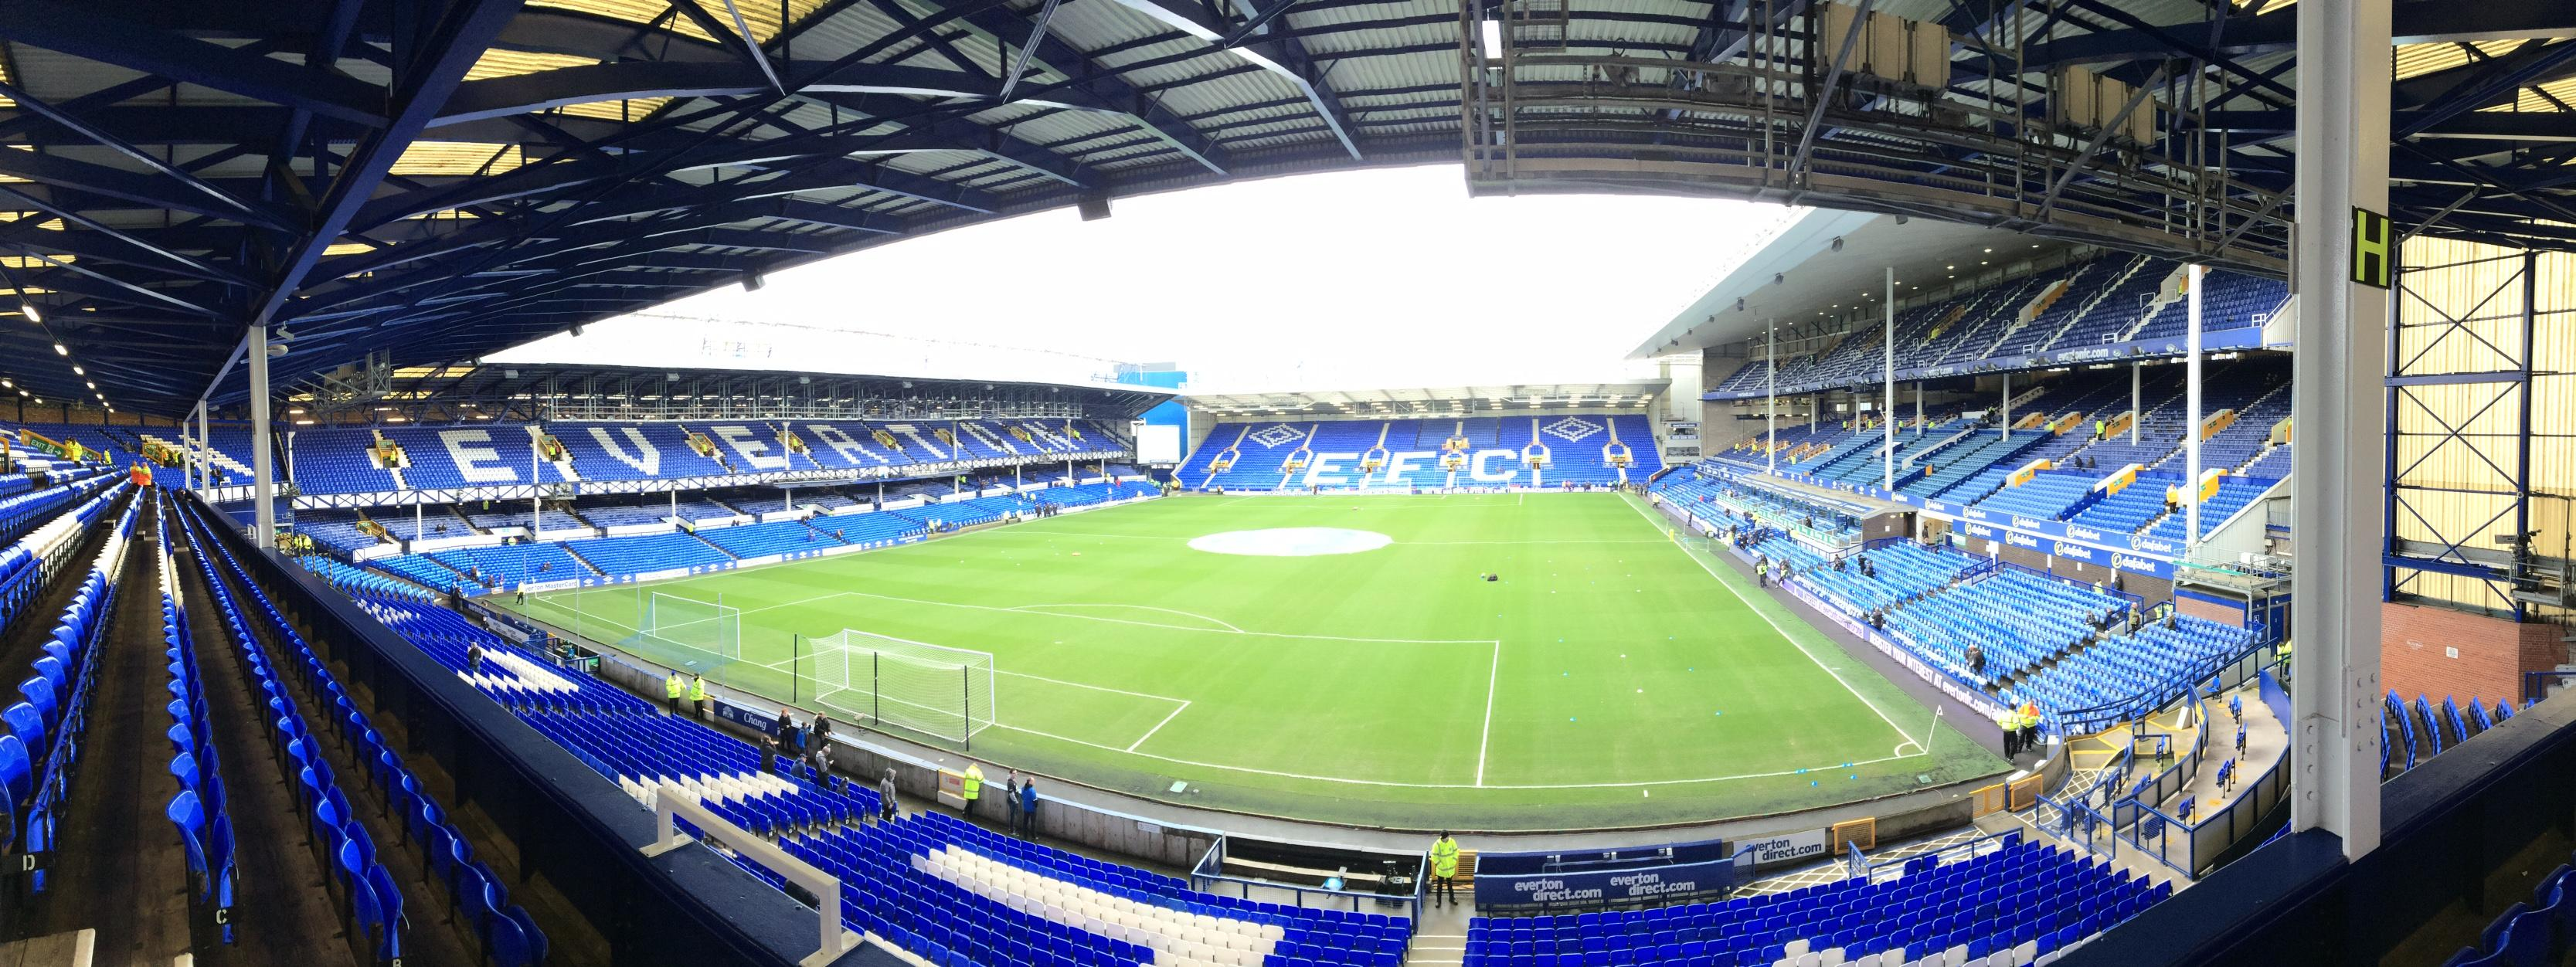 Goodison Park Section Upper Gwladys 2 Row D Seat 59